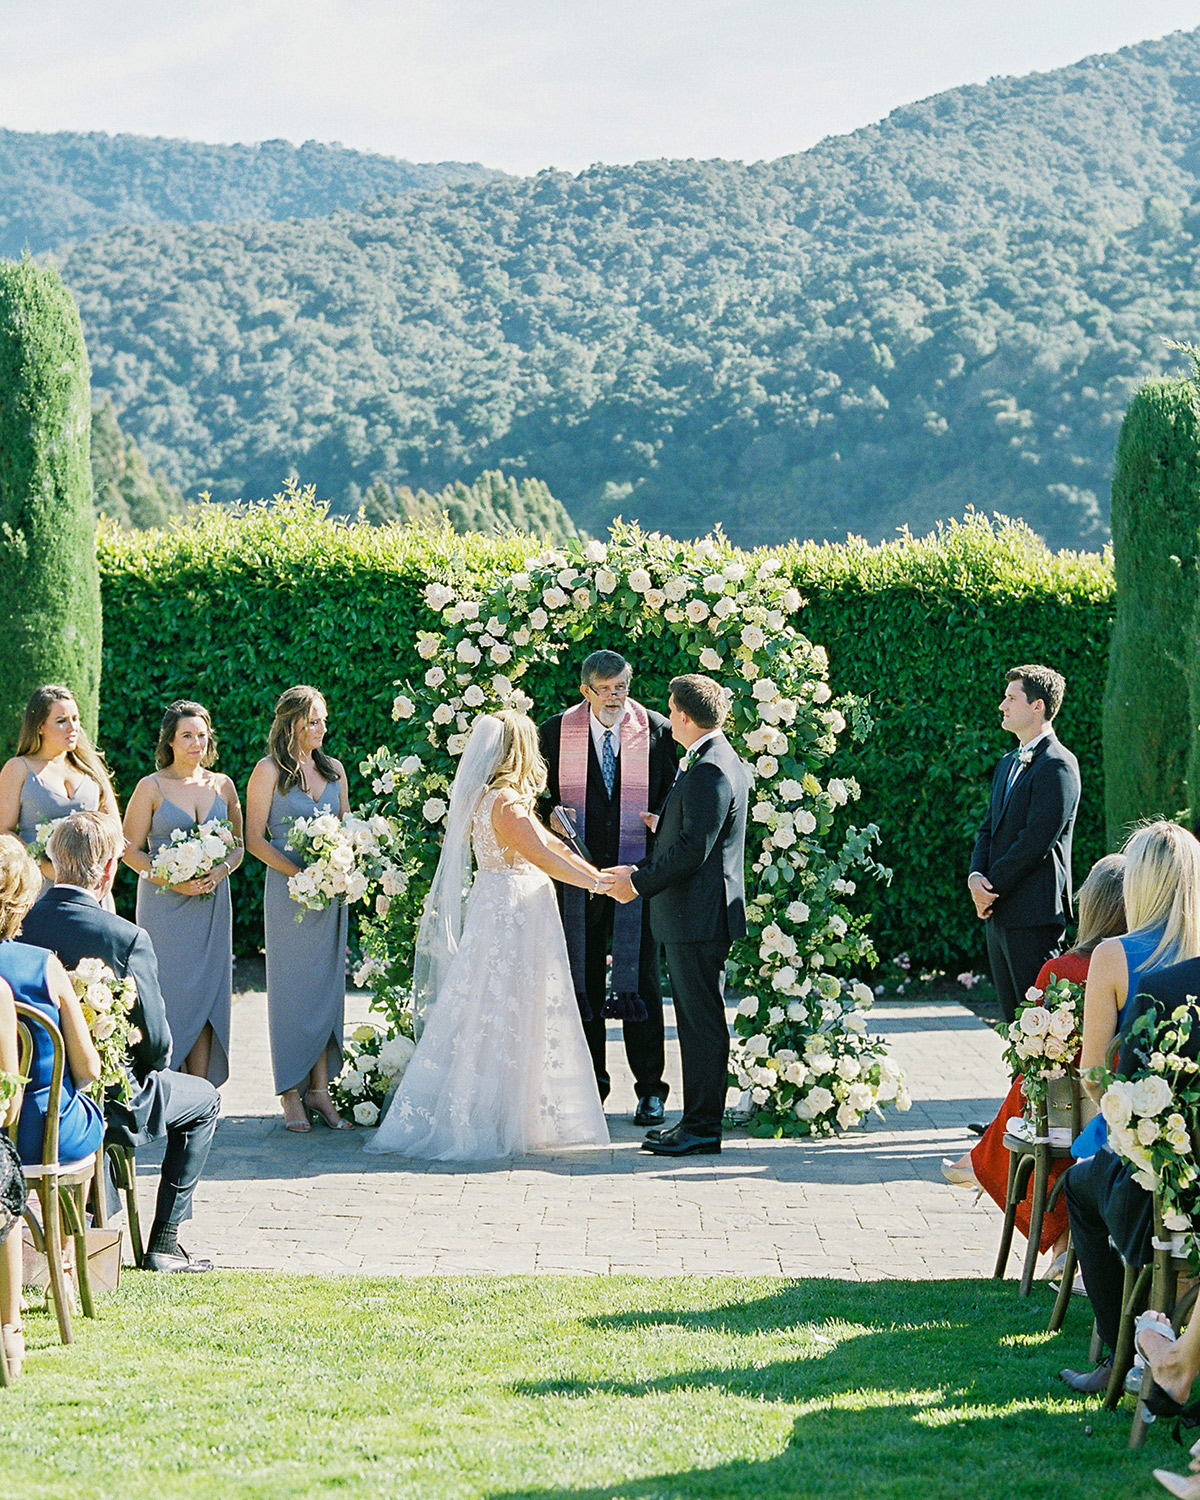 Vows in the Valley